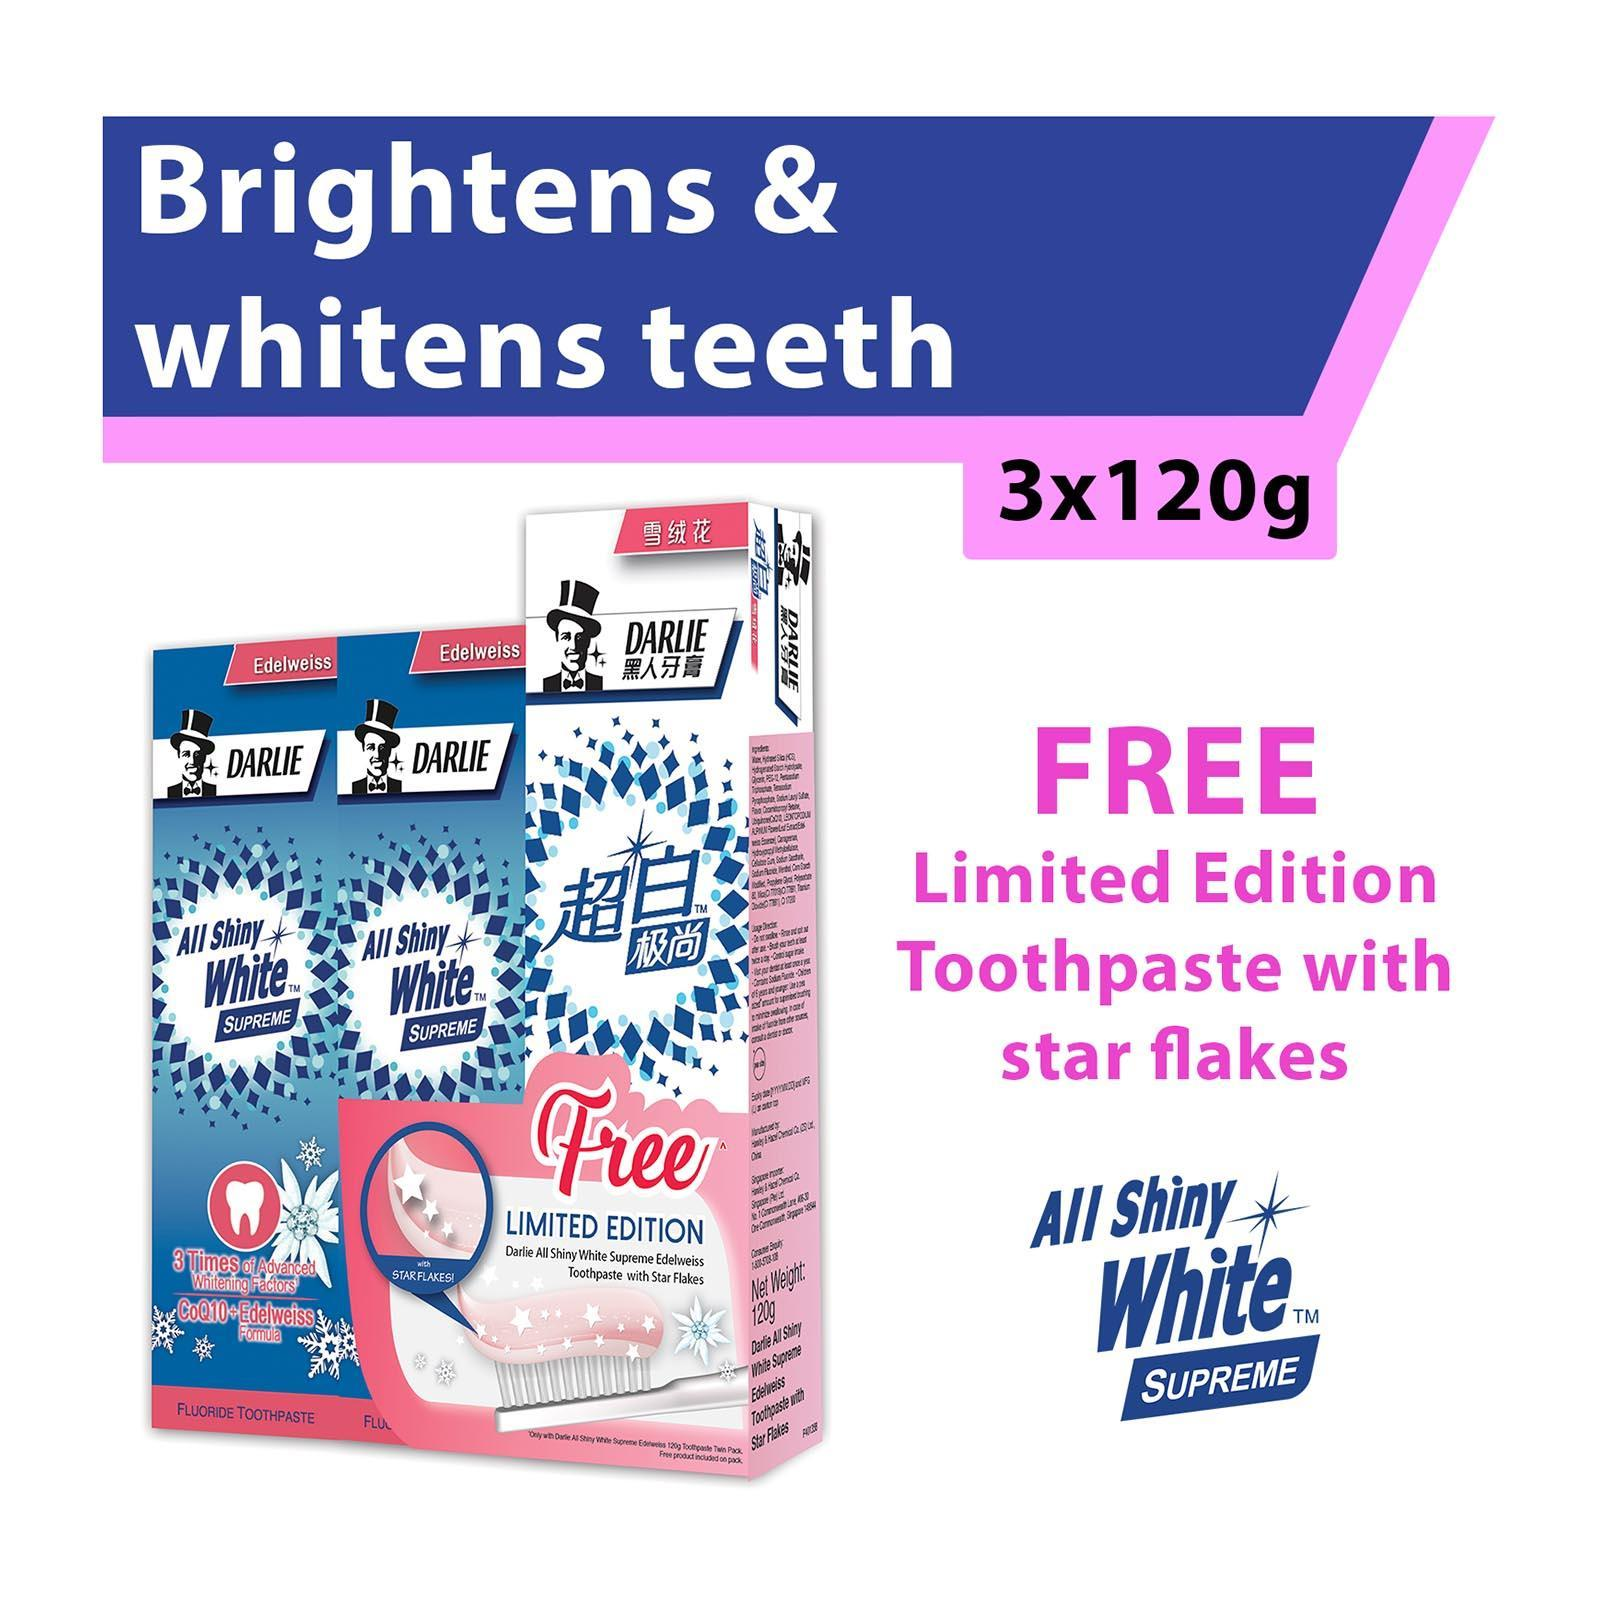 Darlie All Shiny White Supreme Edelweiss Whitening Toothpaste 2s + FREE Supreme Edelweiss with Flakes